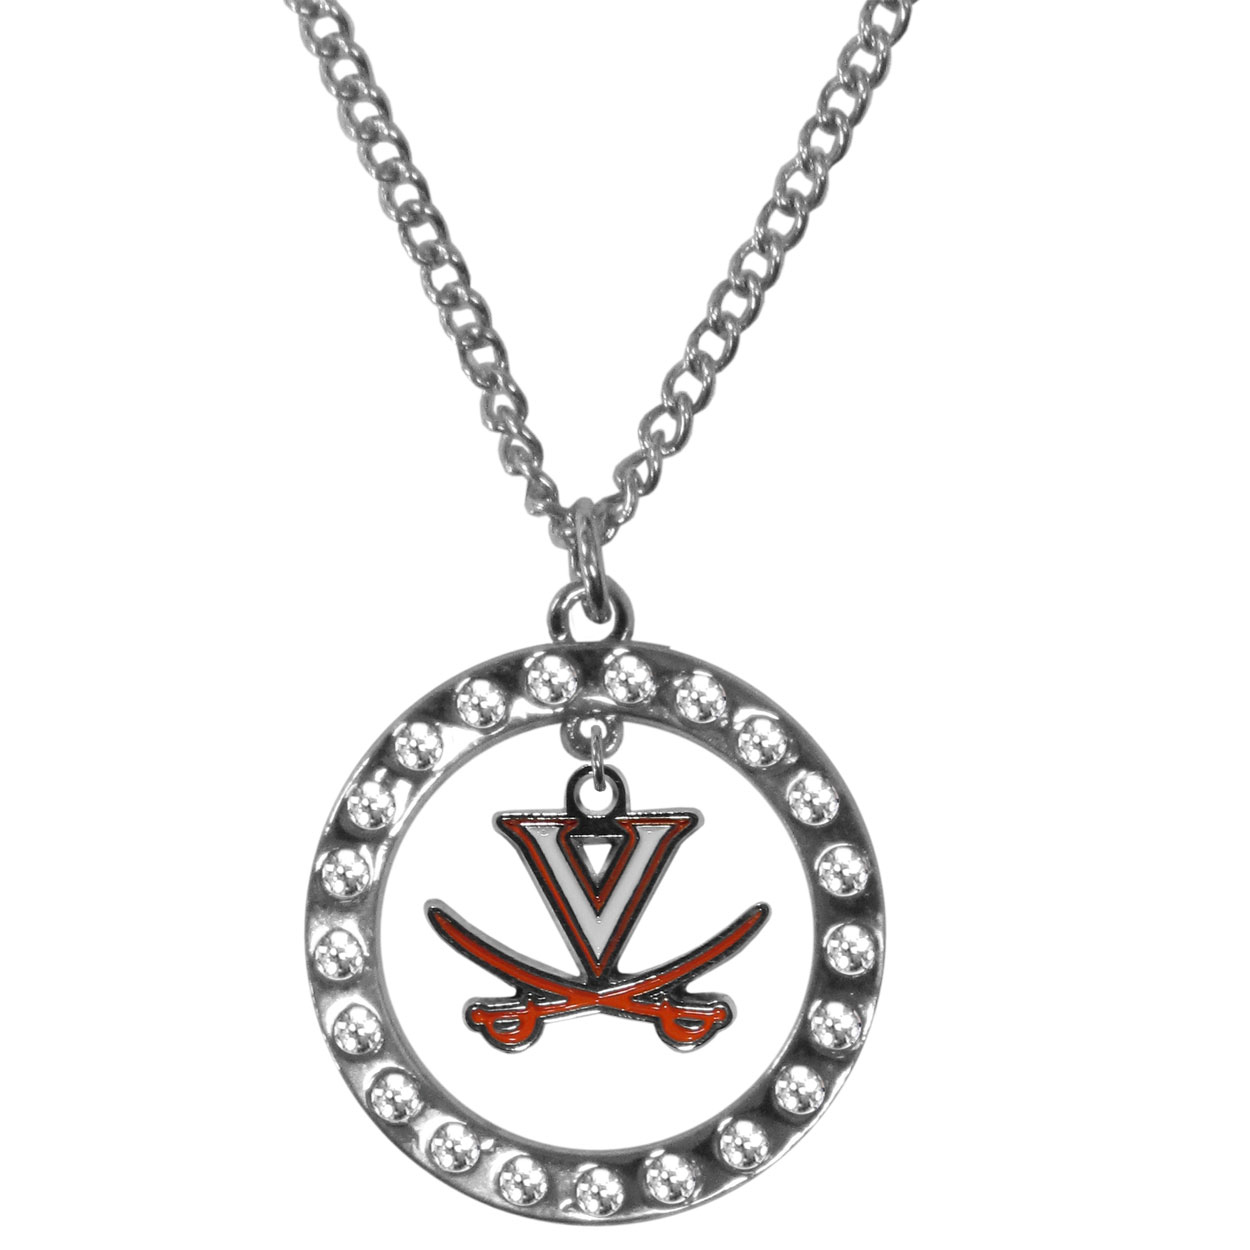 Virginia Cavaliers Rhinestone Hoop Necklaces - Our Virginia Cavaliers rhinestone hoop necklace comes on an 18 inch chain and features a hoop covered in rhinestones with a high polish chrome finish and a cast and enameled team charm dangling in the center.